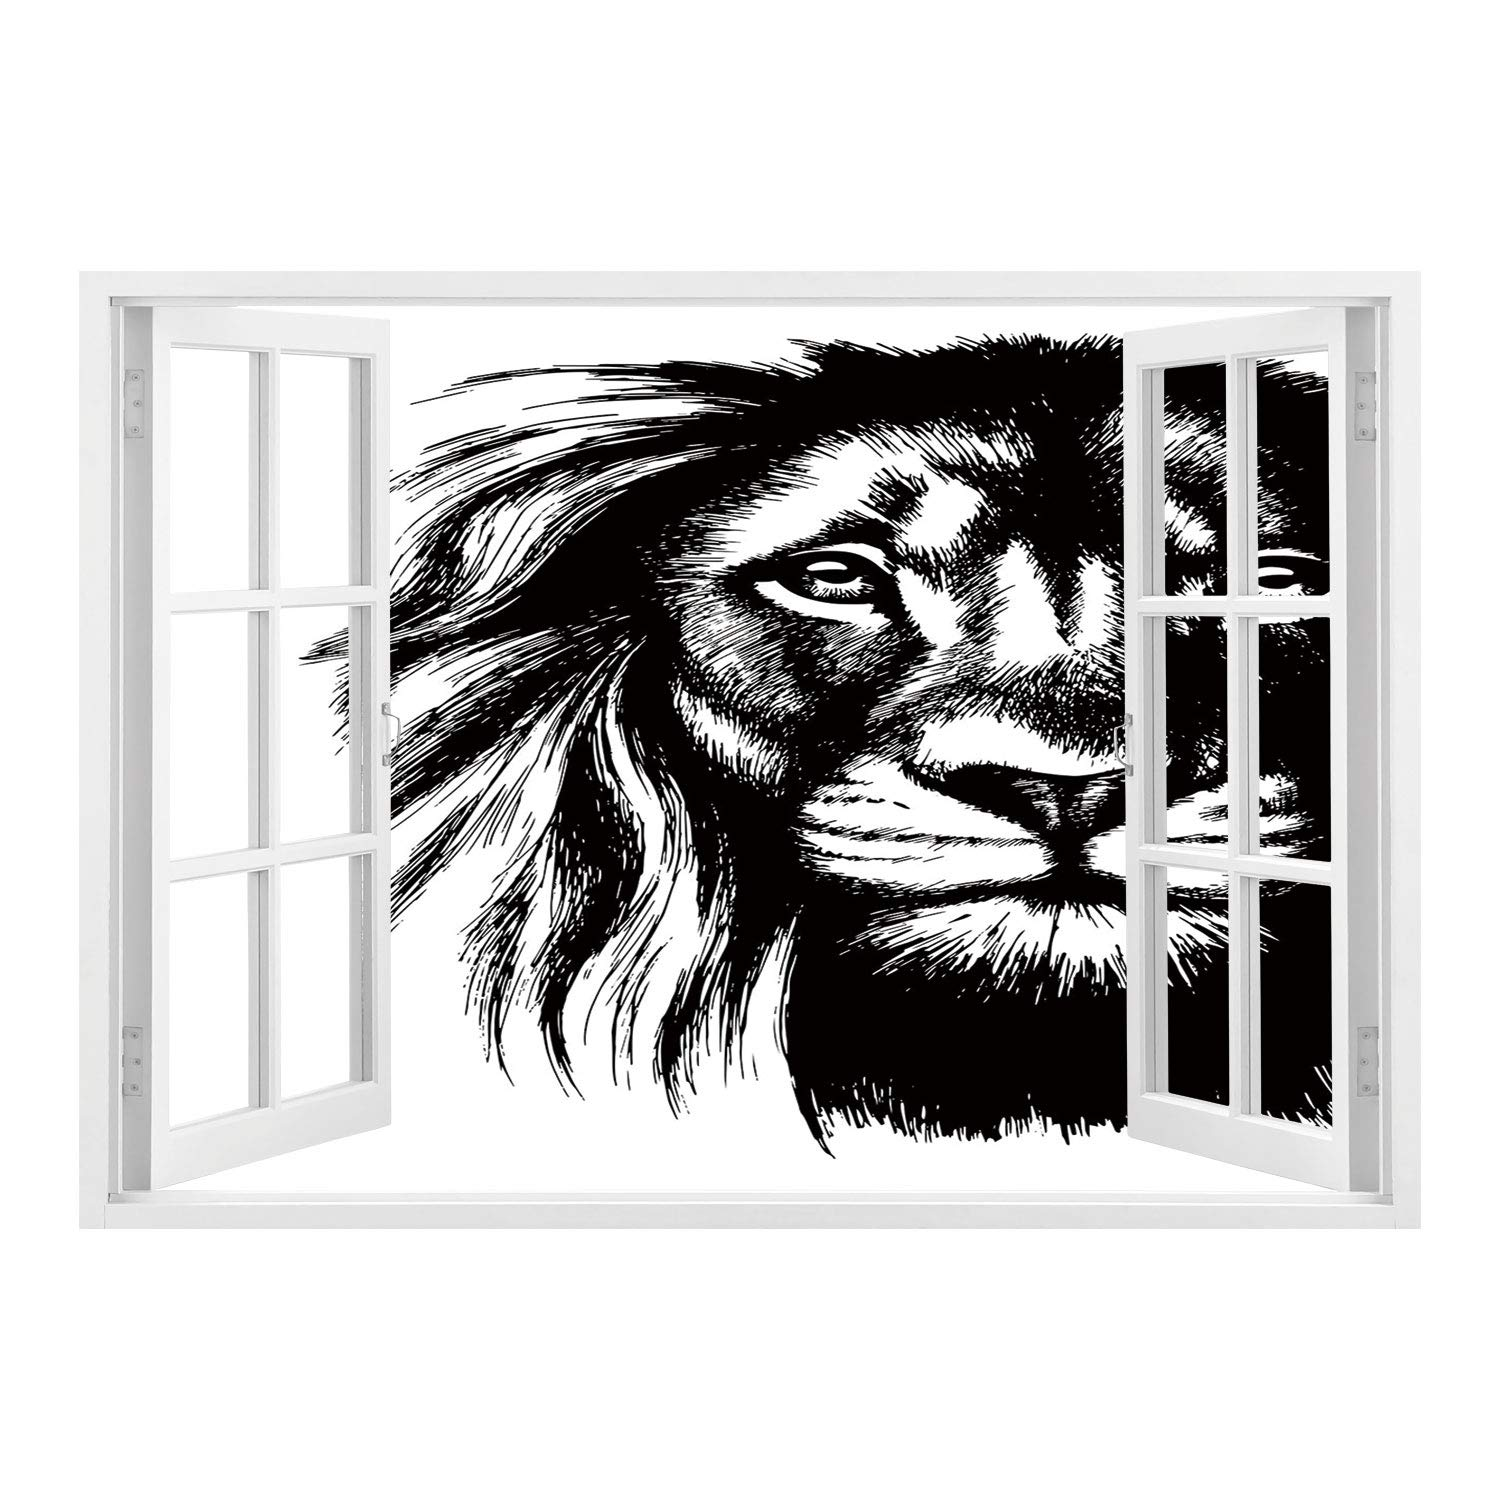 Scocici wall stickerwindow looking out into lionwild african safari life animal predator hunter dangerous mammal sketchy portrait decorativeblack